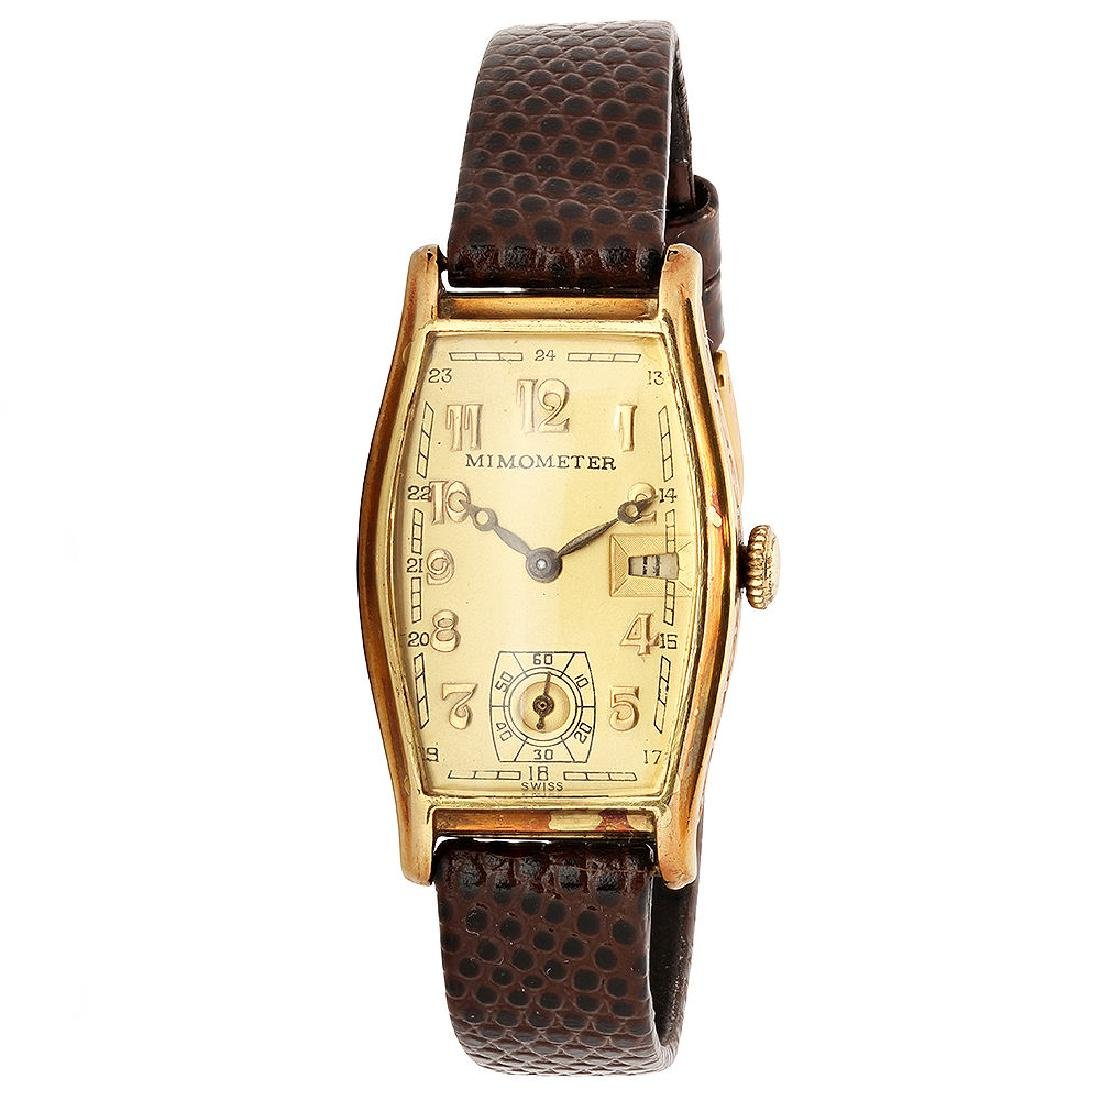 Art Deco Mimometer with Date by Gerard Peregaux 14K